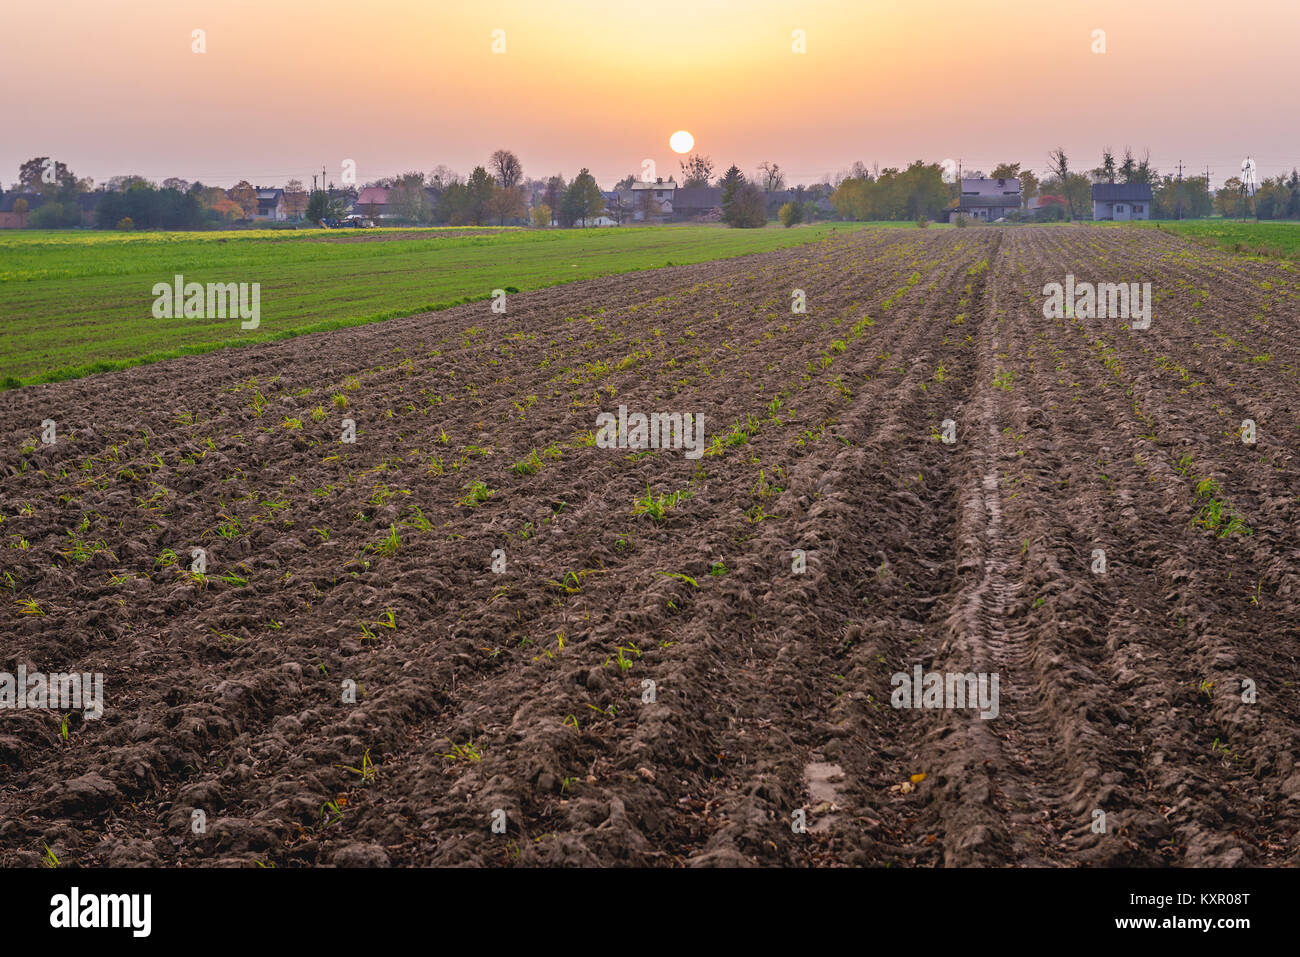 Sunset over winter cereal fields in Brochow village, Sochaczew County in Masovian Voivodeship of Poland - Stock Image